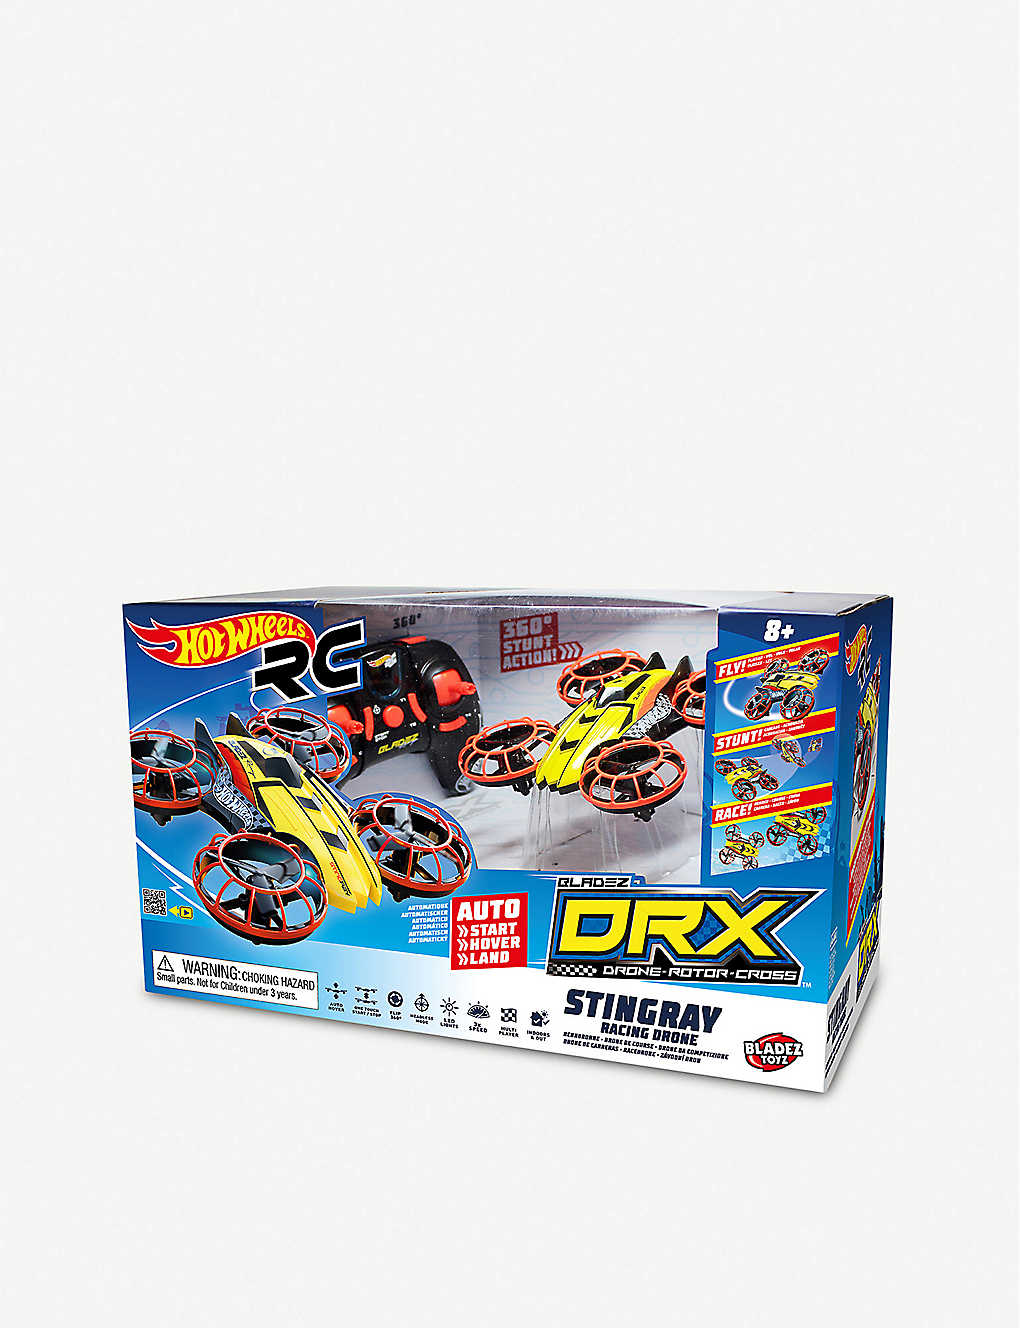 HOTWHEELS: Drone Racerz Stingray Racing Drone